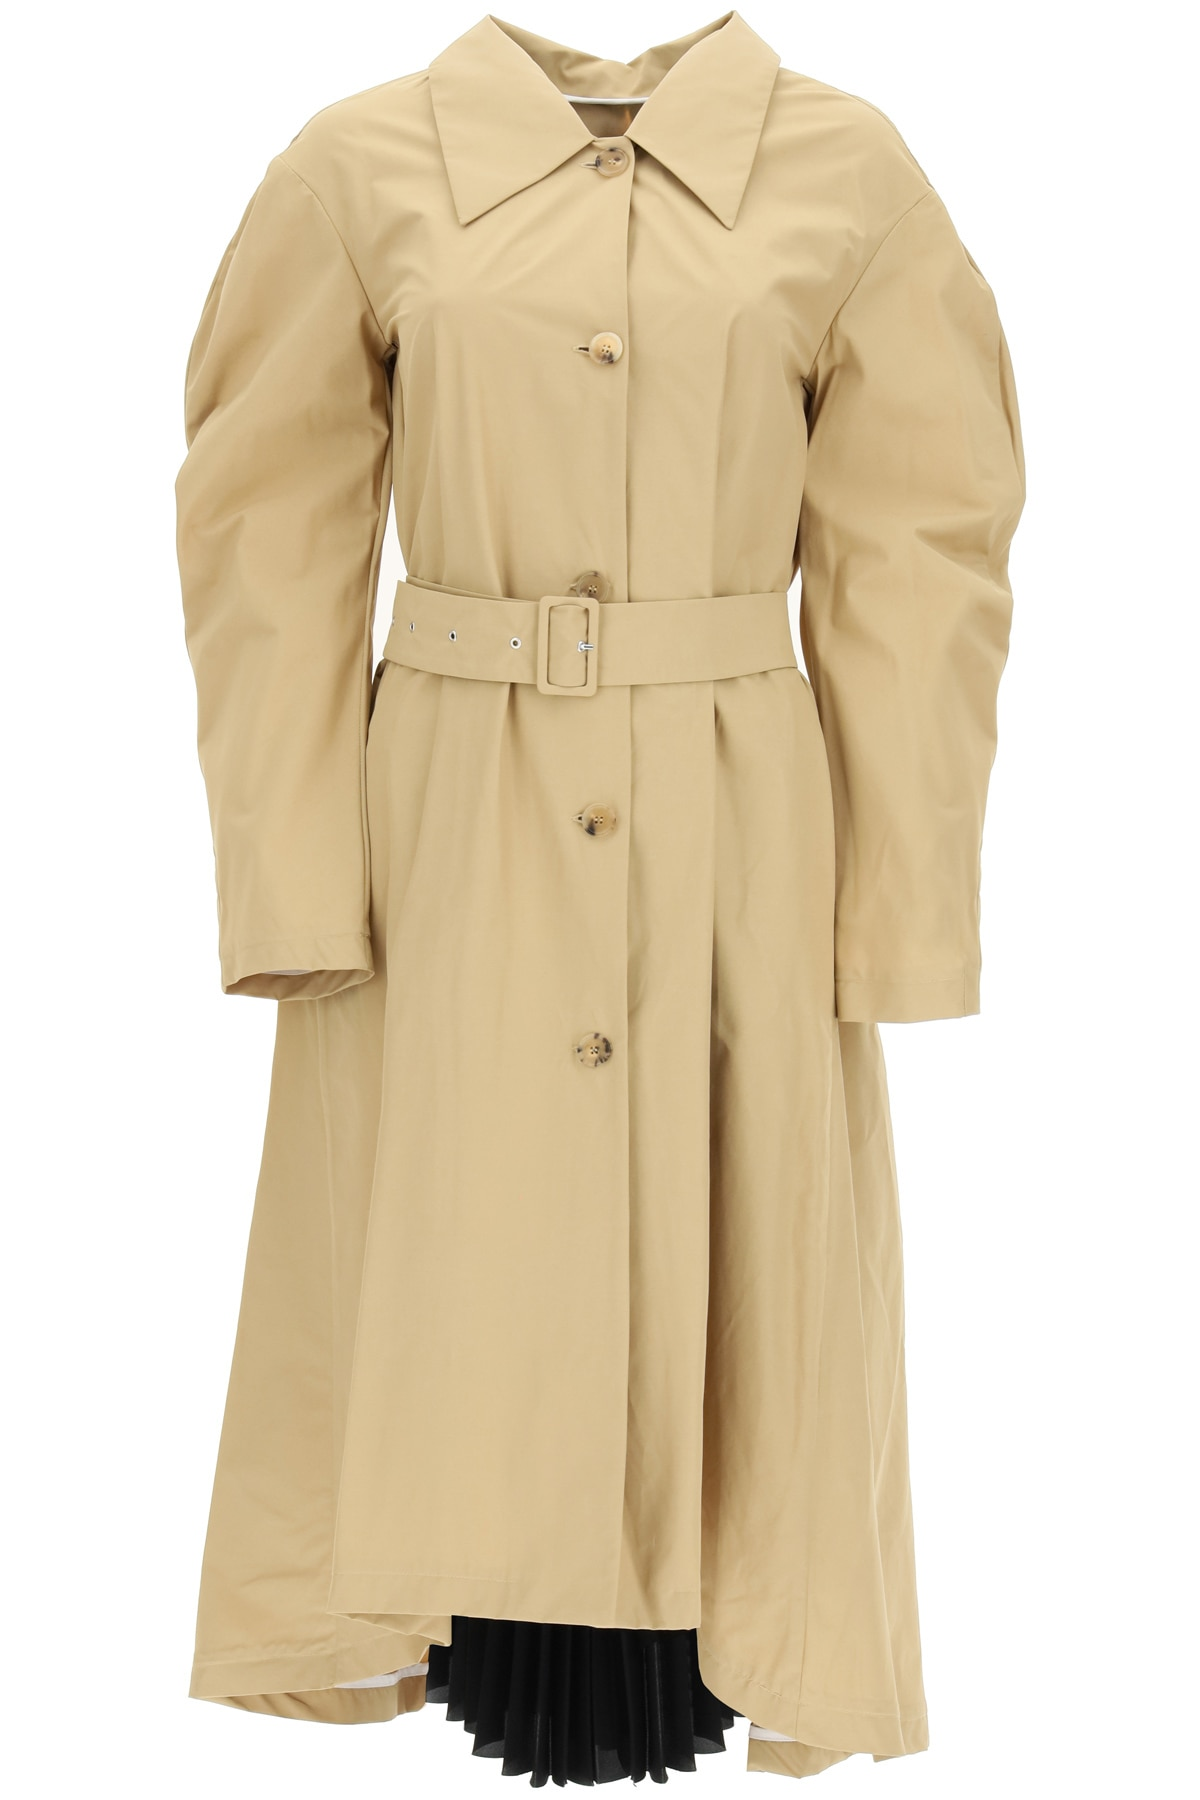 A.W.A.K.E. MODE TRENCH COAT WITH PLEATED INSERT 34 Beige Cotton